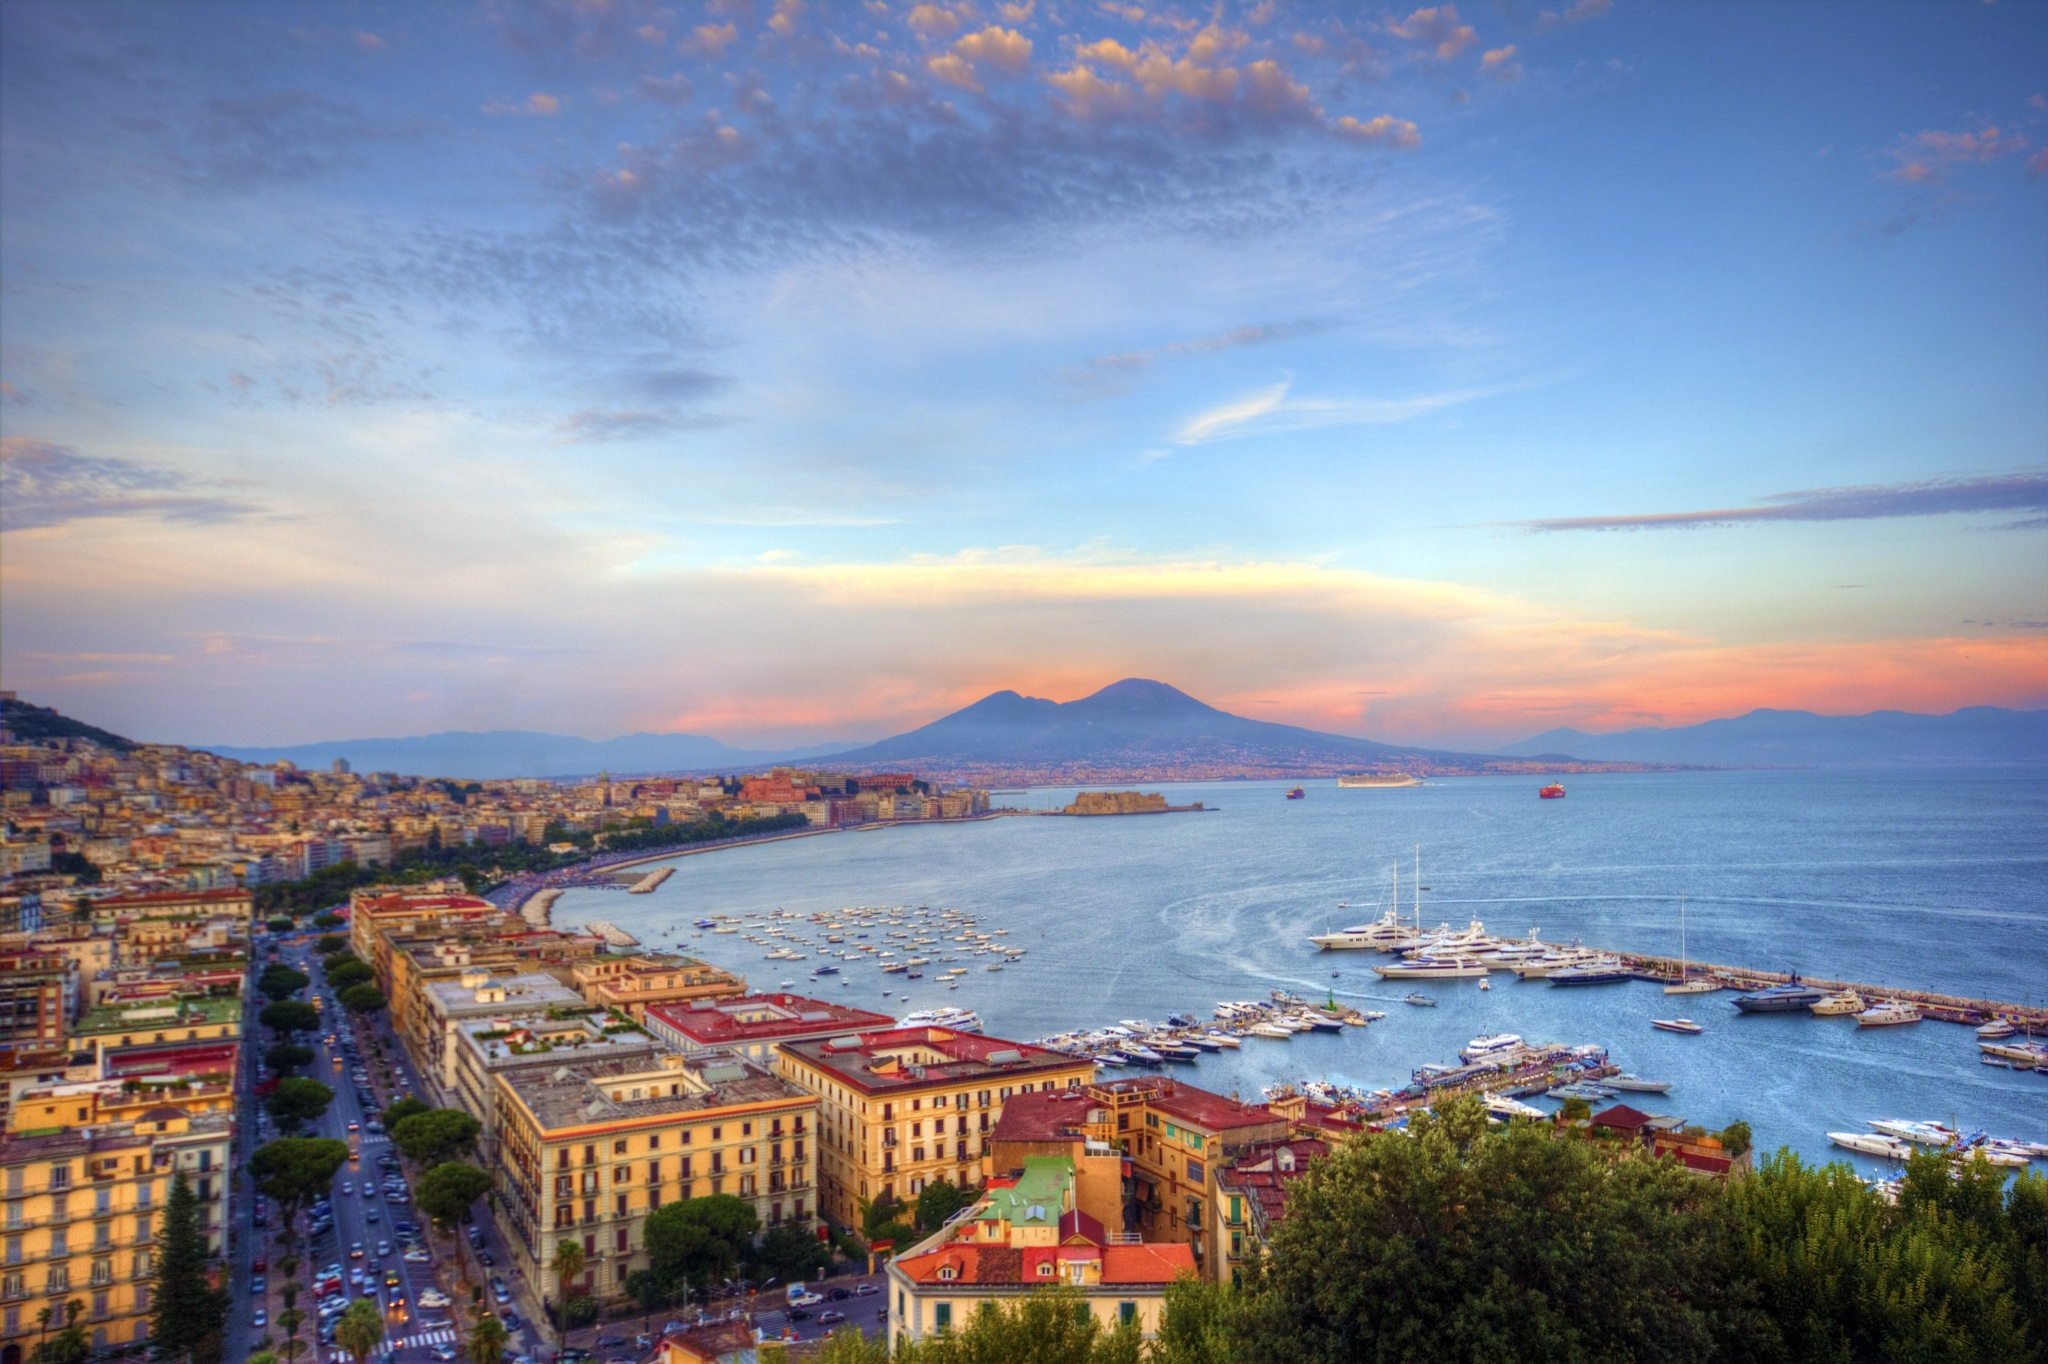 Images of naples italia mia - Naples italy wallpaper ...